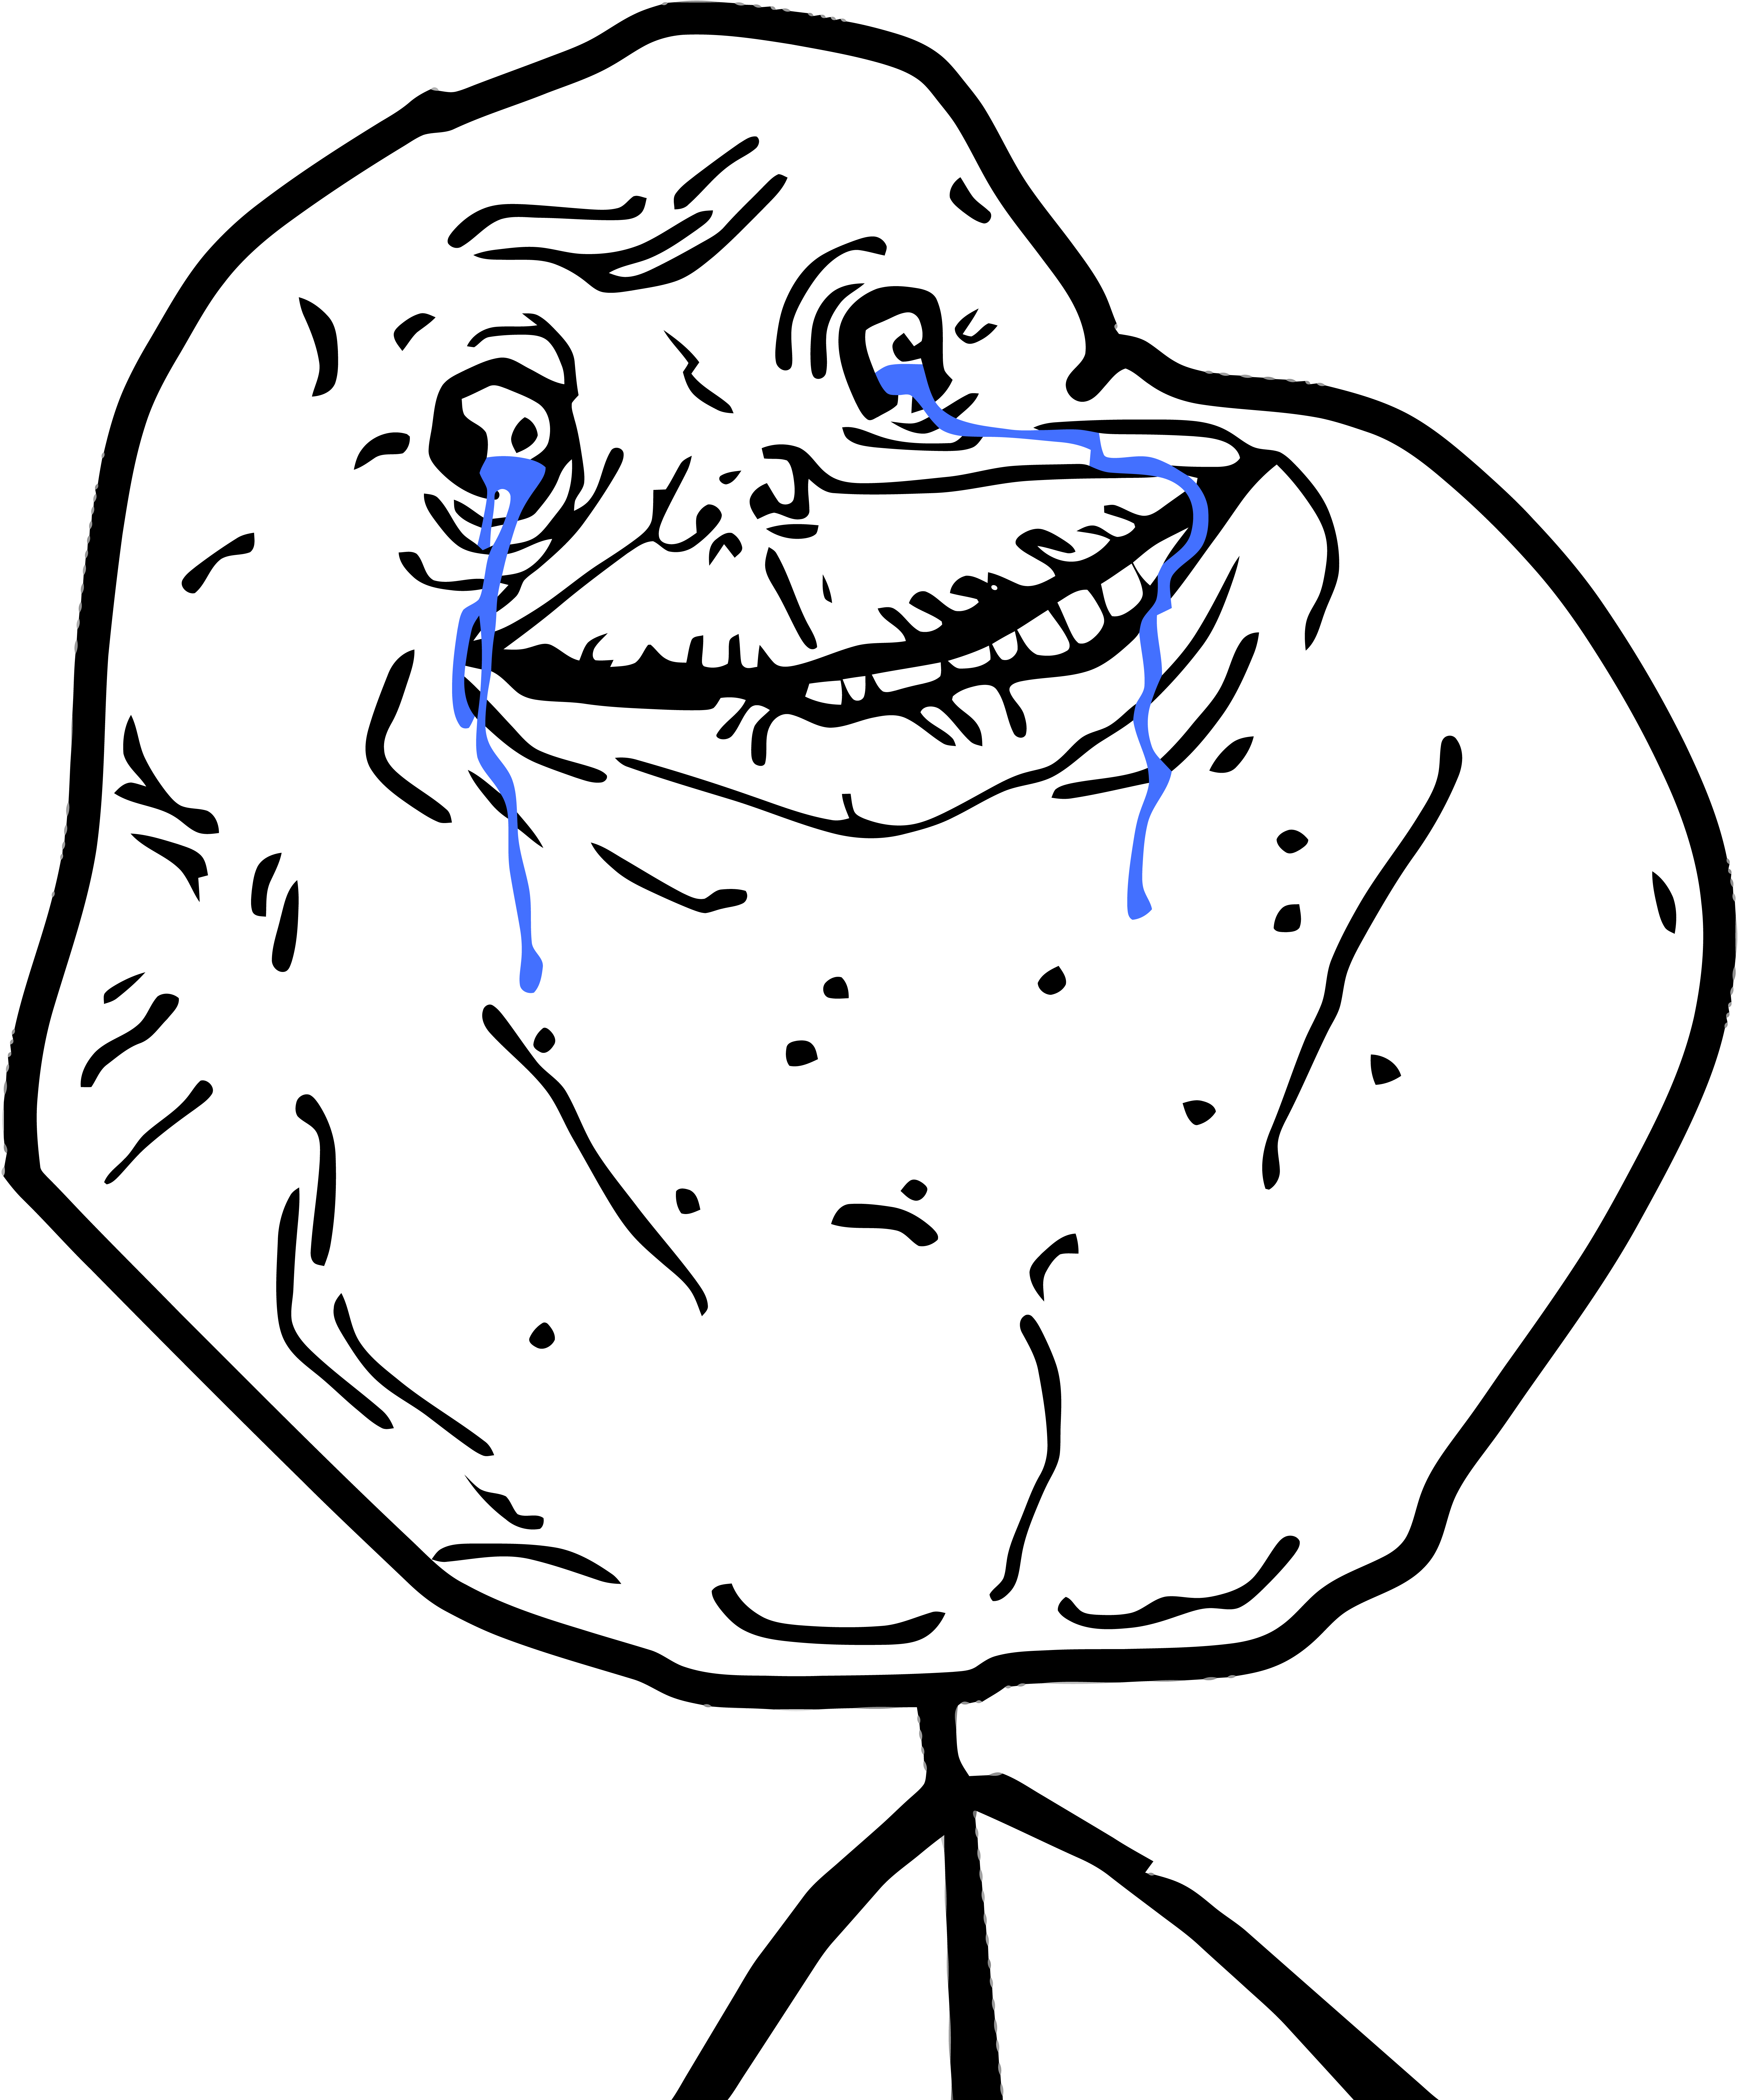 forever_alone_by_rober_raik-d4clvo4.png